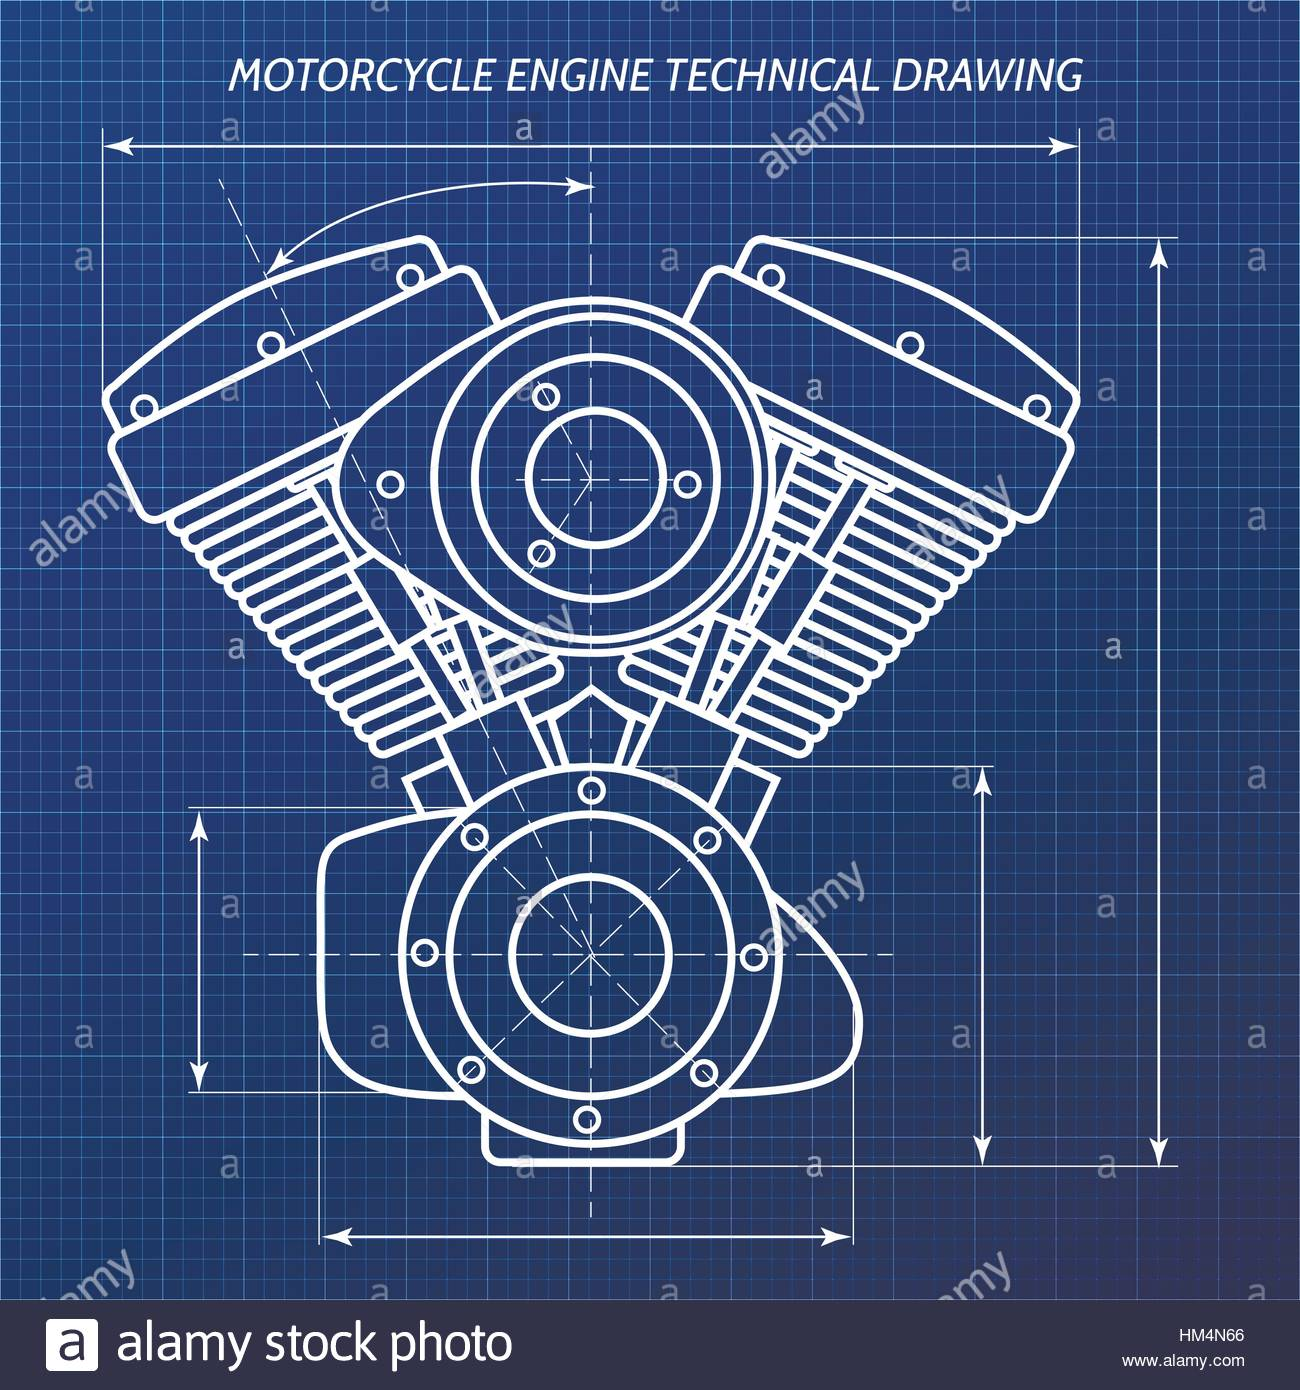 Motorcycle Engine Drawing At Free For Personal Use Basic Diagram 1300x1390 Technical Drawings Of Motor Engineering Concept